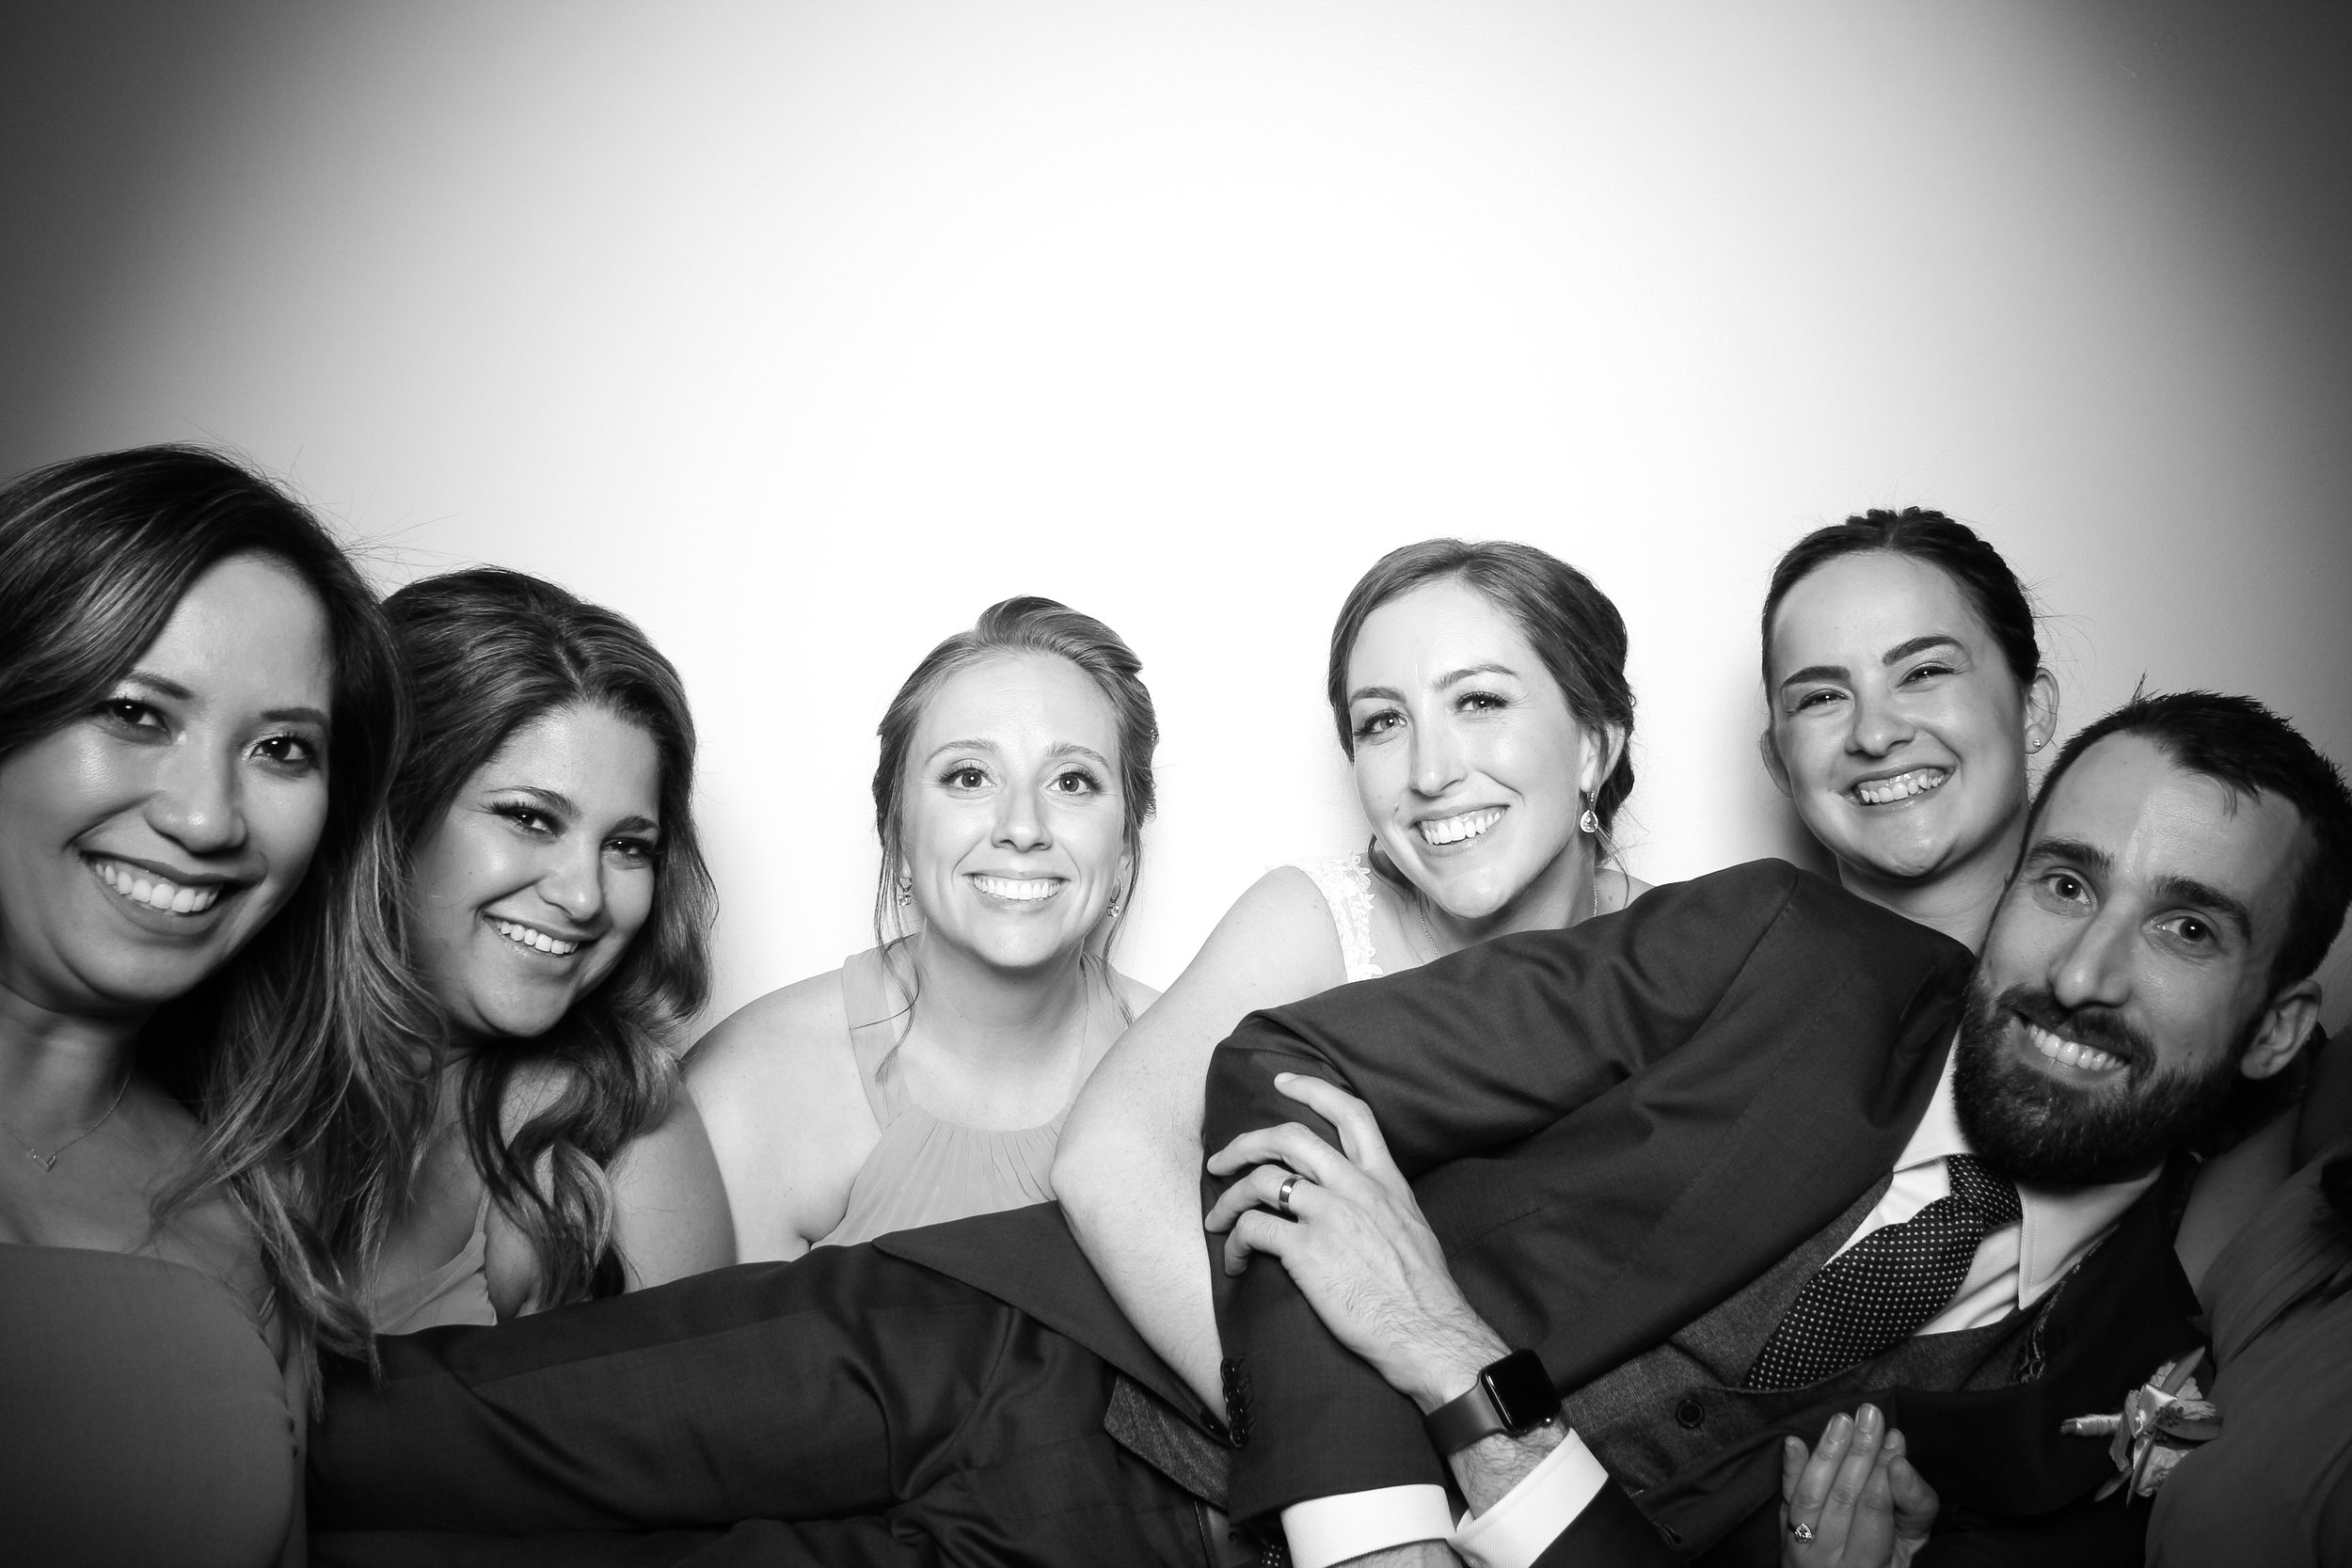 Chicago_Vintage_Wedding_Photobooth_Ravenswood_11.jpg